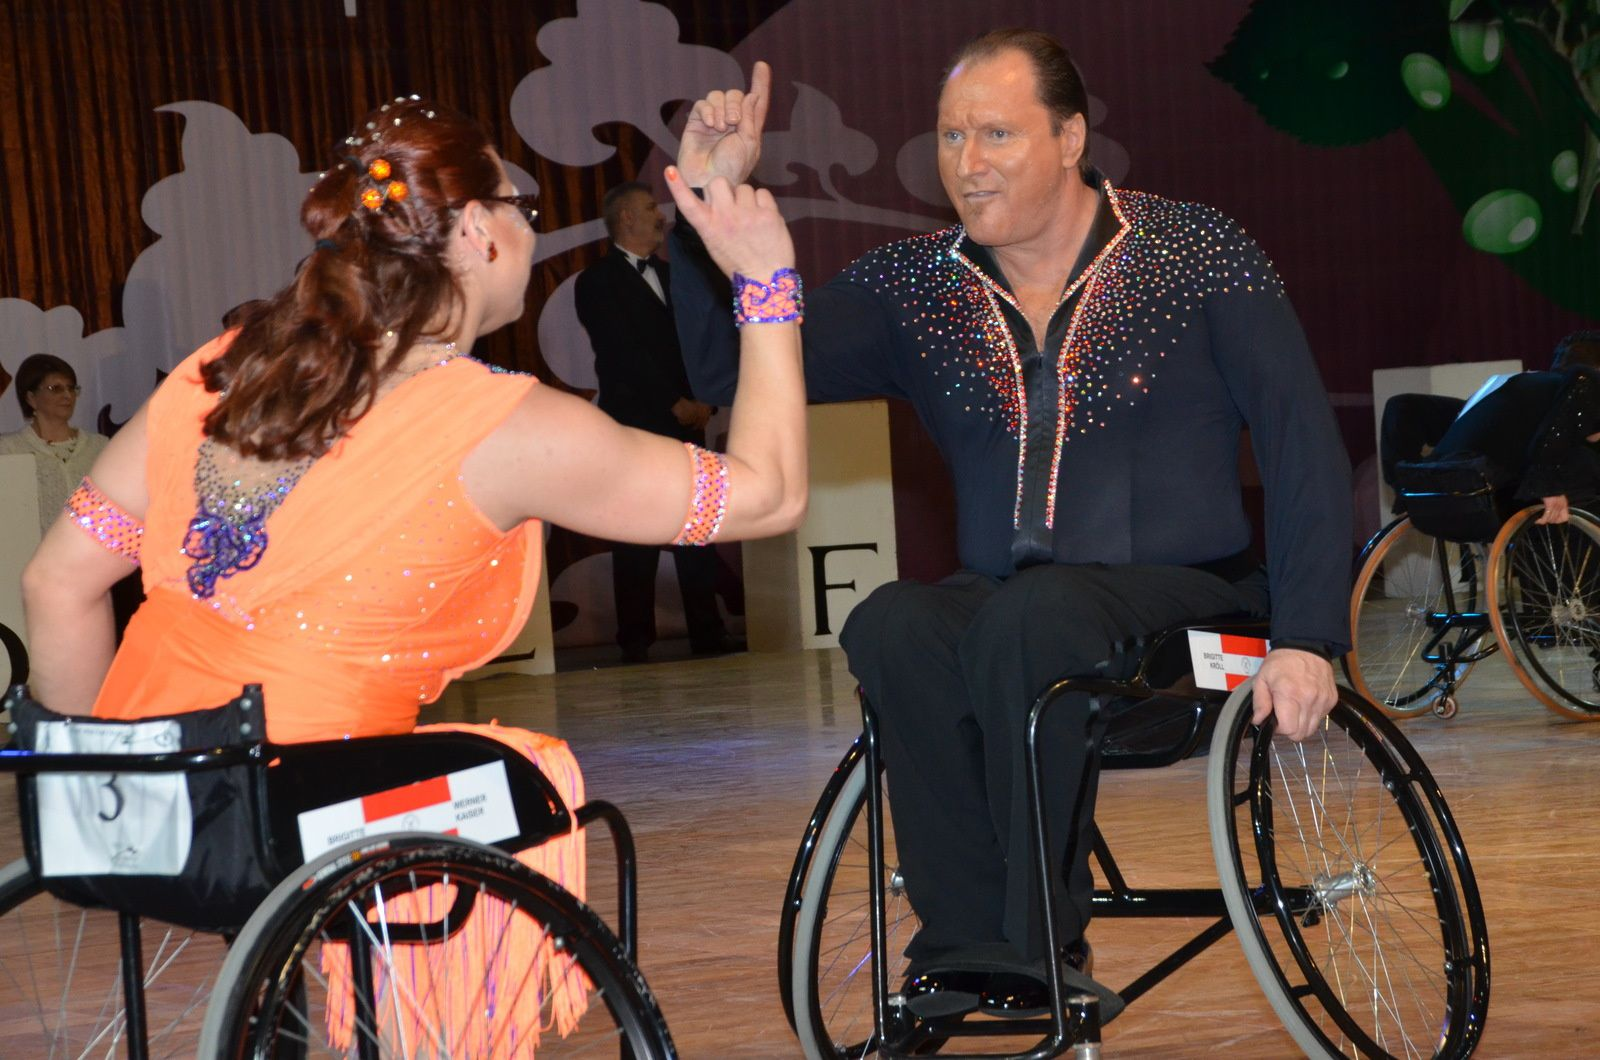 Nationalteam Wheelchairdancesport mit 2 Bronzemedaillen aus Russland zurück